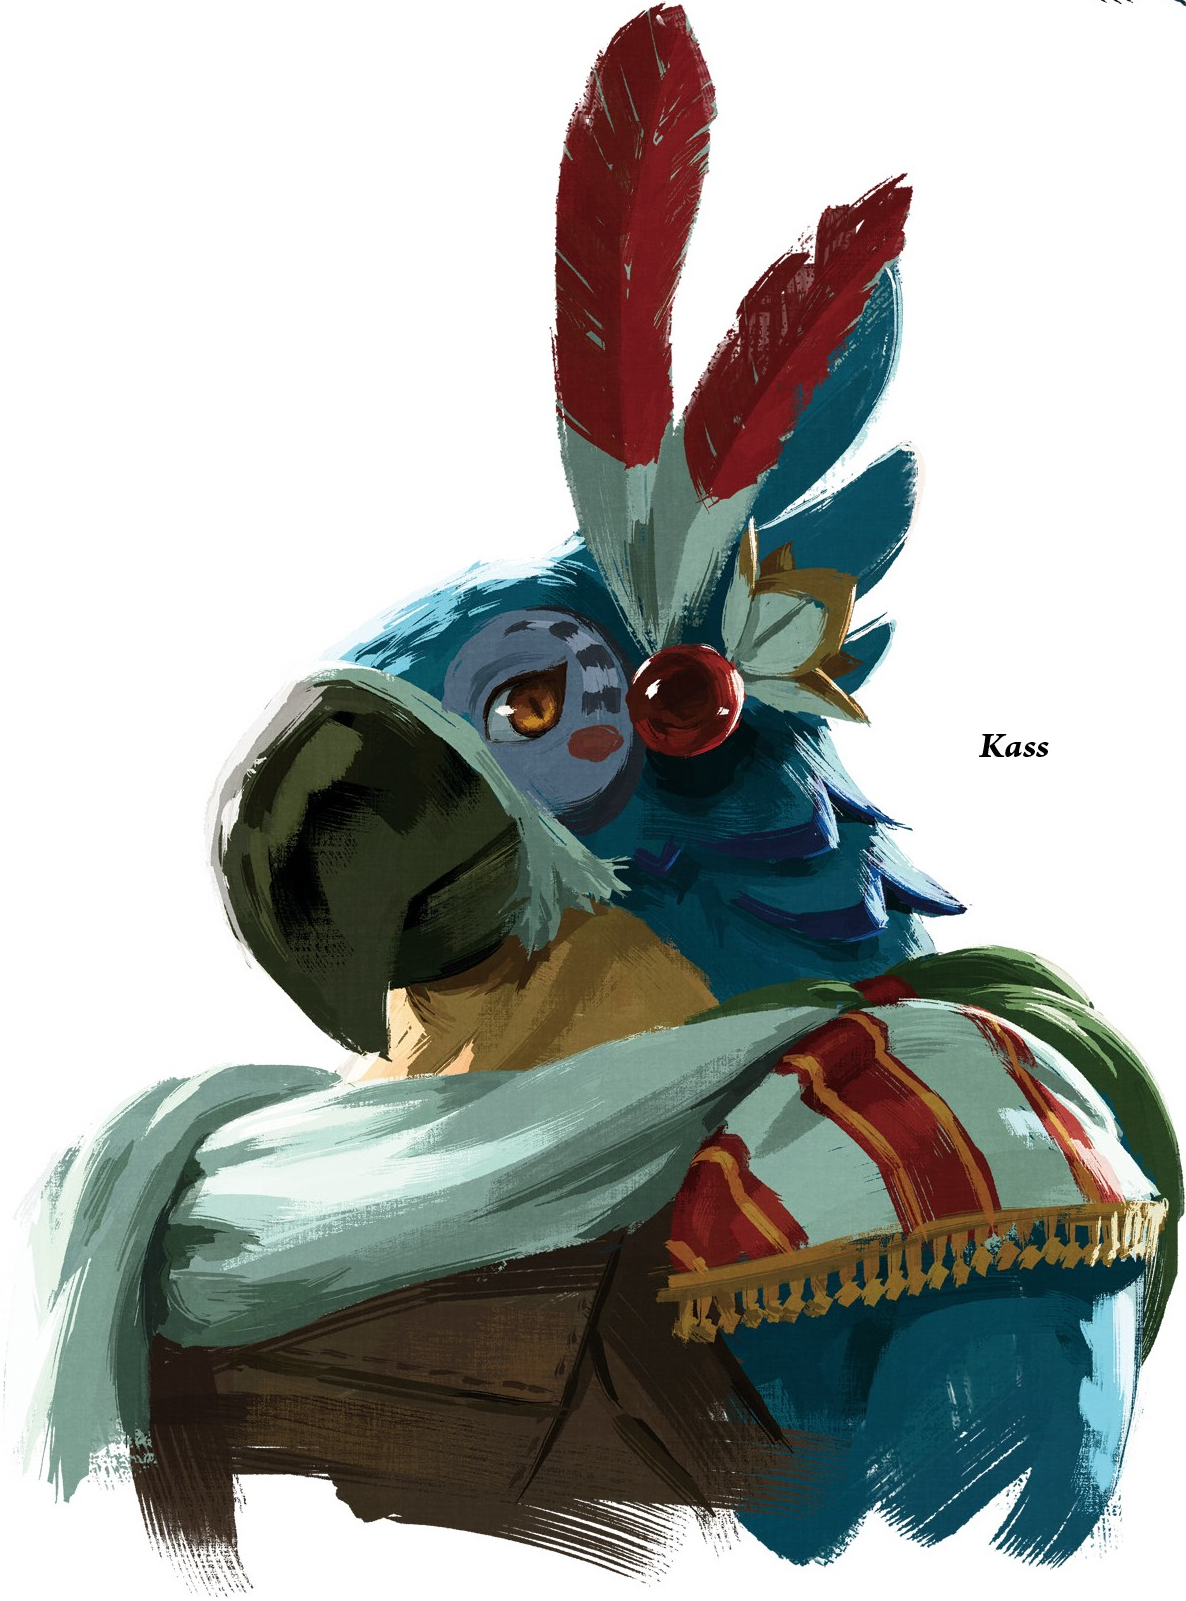 Kass Zelda Wiki Translated from french by millenium.us.org. kass zelda wiki